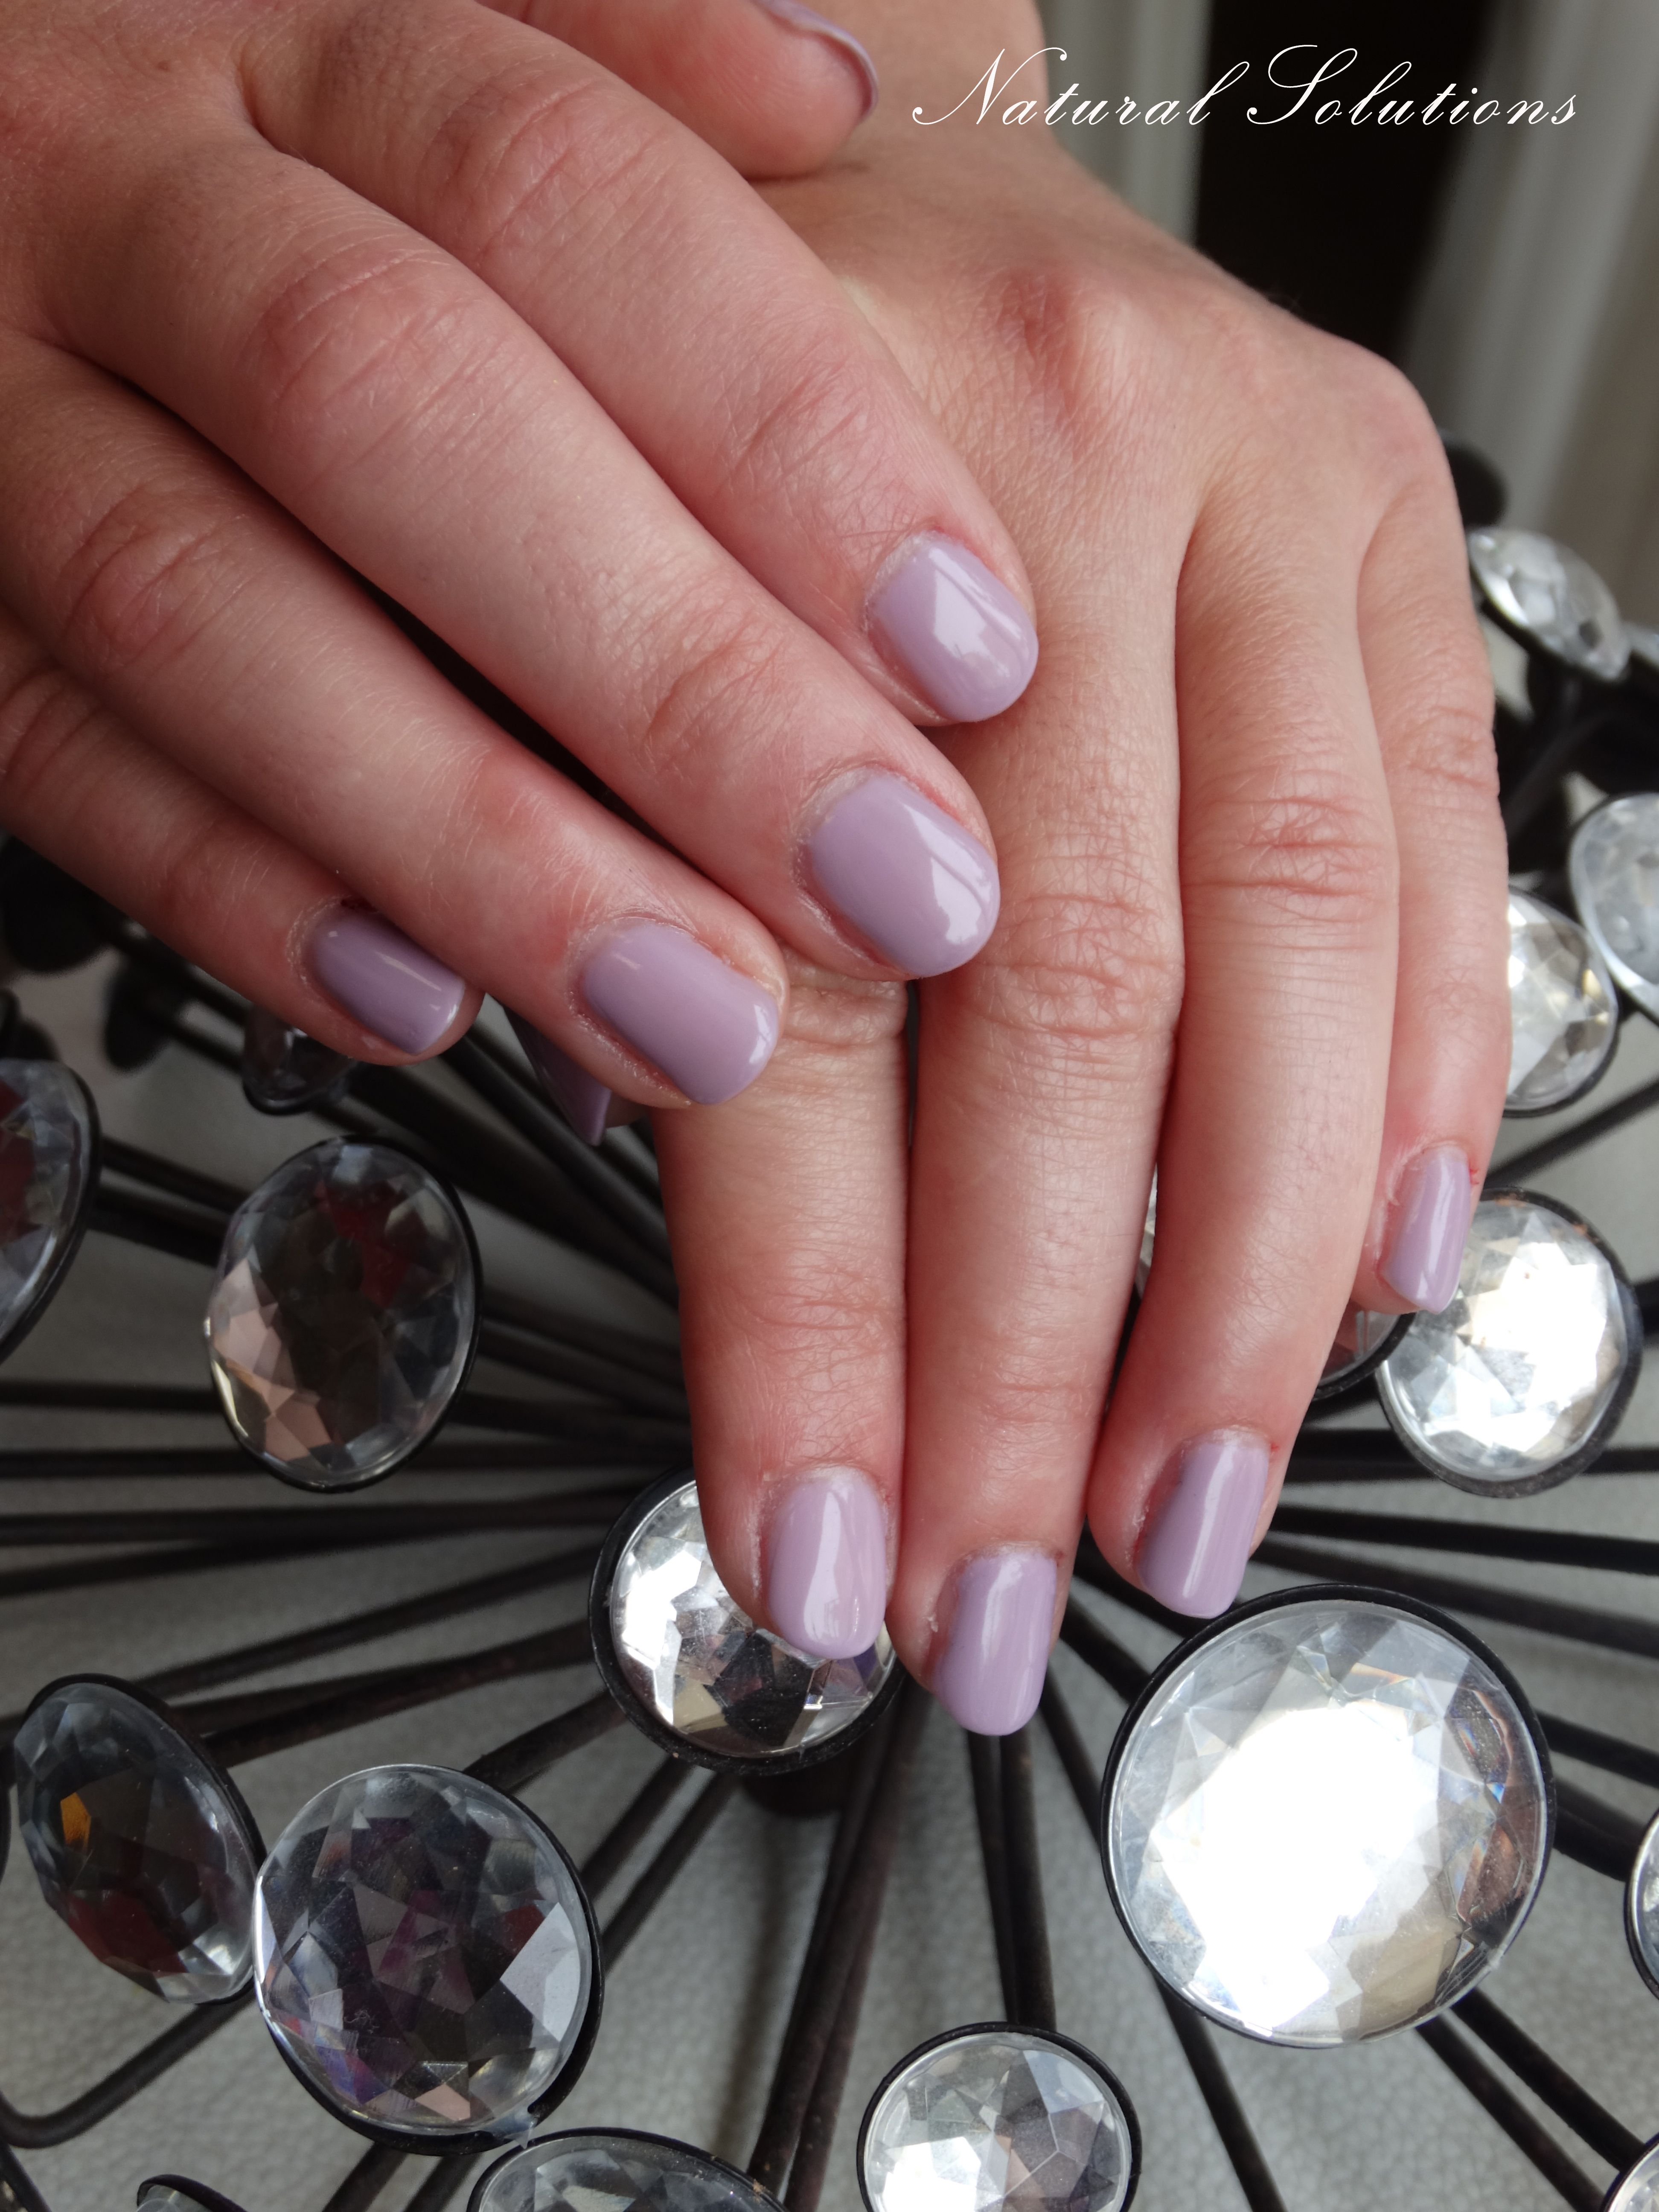 Natural Solutions Offers Spa Manicures And Pedicures Acrylic And Gel Nails We Also Use Cnd Shellac Tammy Ta Hair And Nail Salon Spa Manicure Holistic Beauty